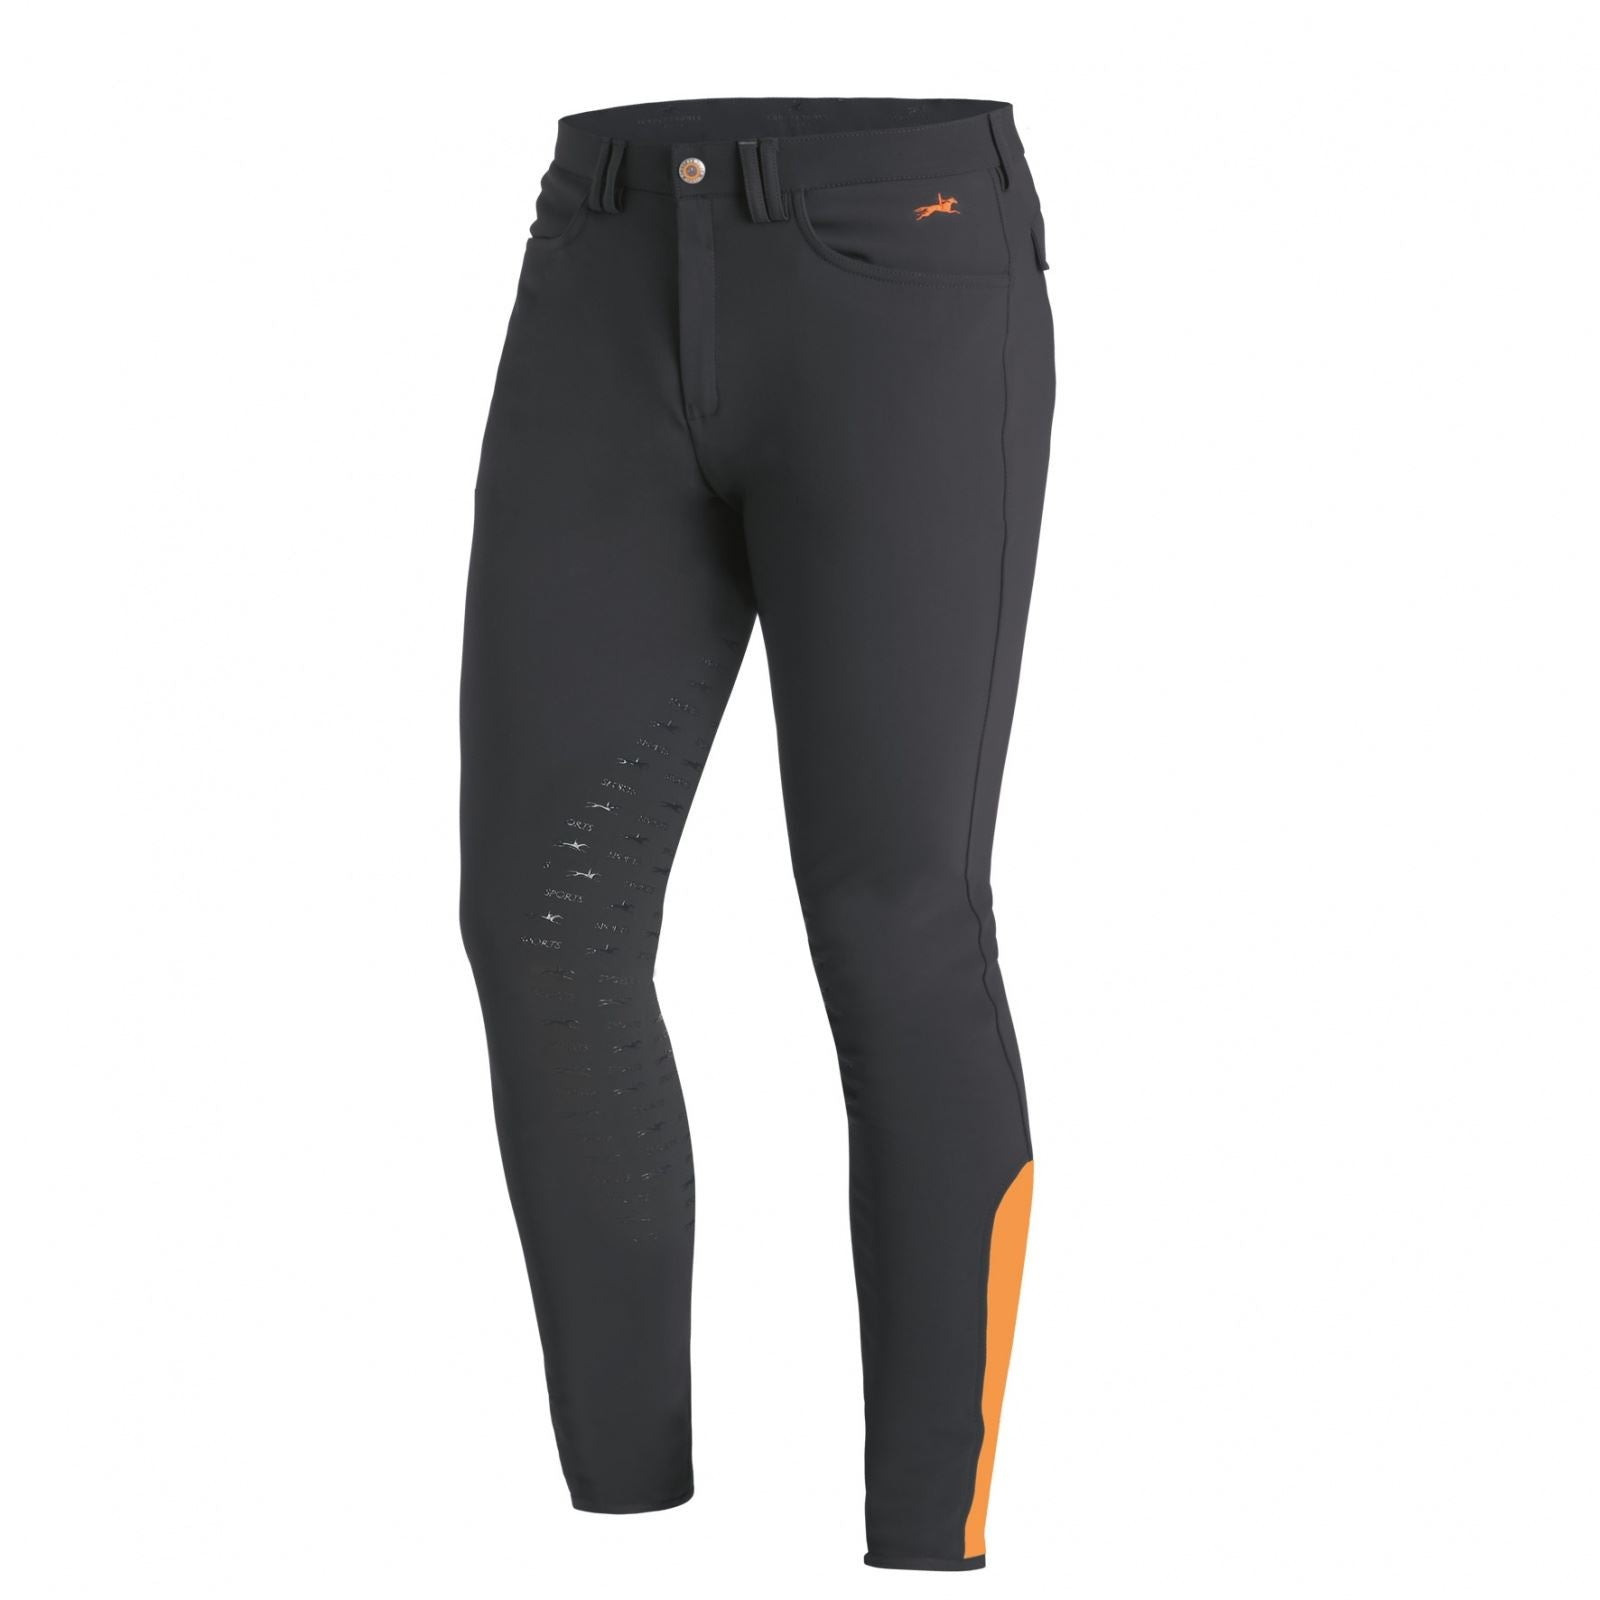 Schockemohle Hero Full Seat Men's Breeches